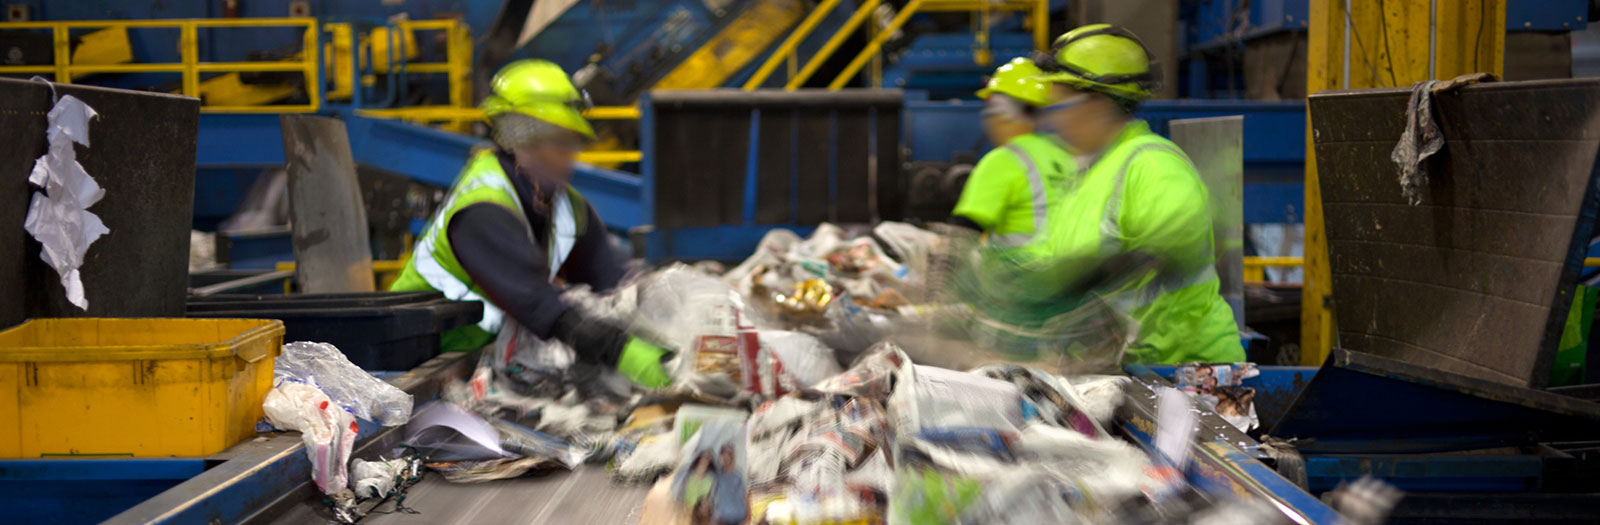 workers sorting recycling